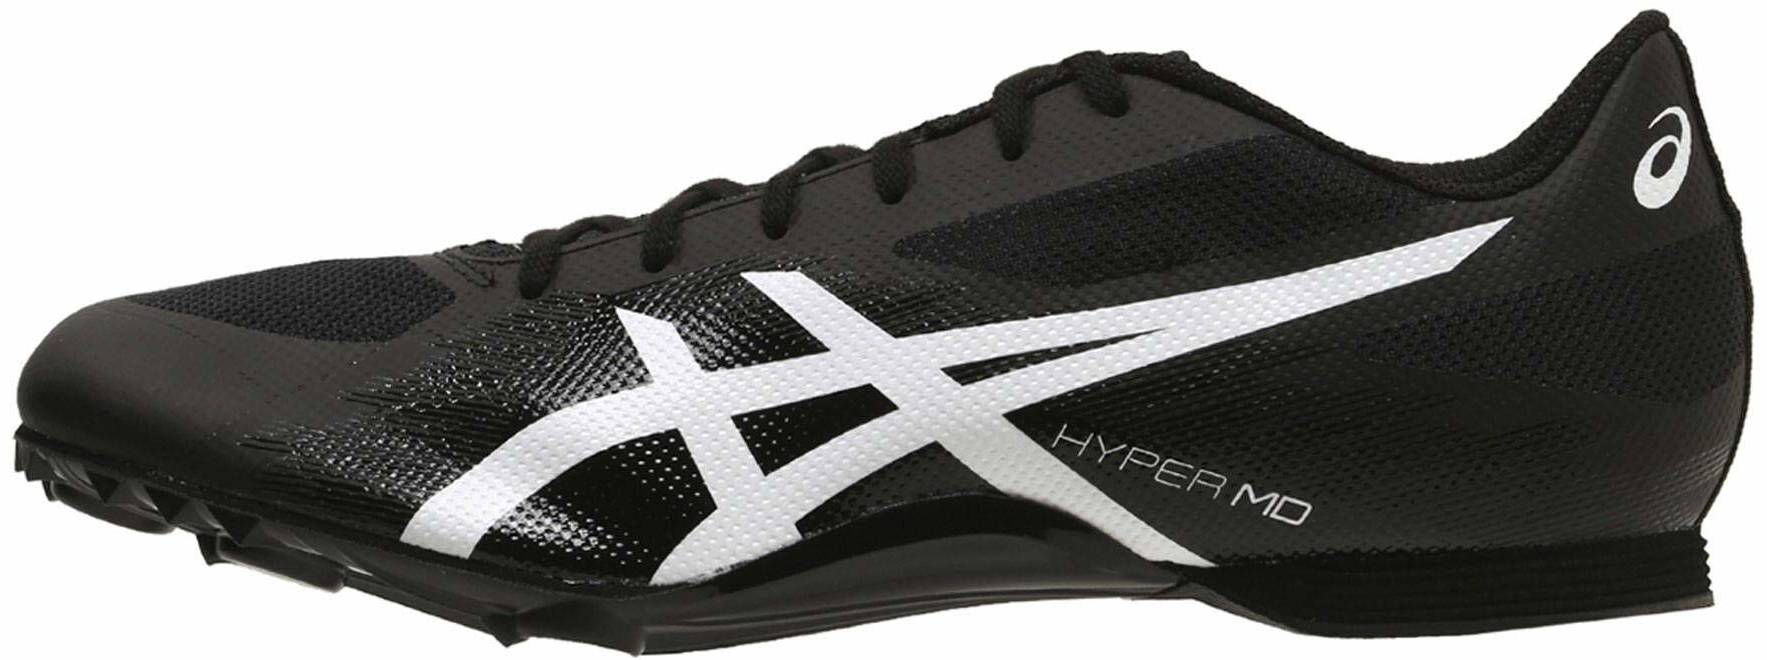 Only $25 + Review of Asics Hyper MD 7